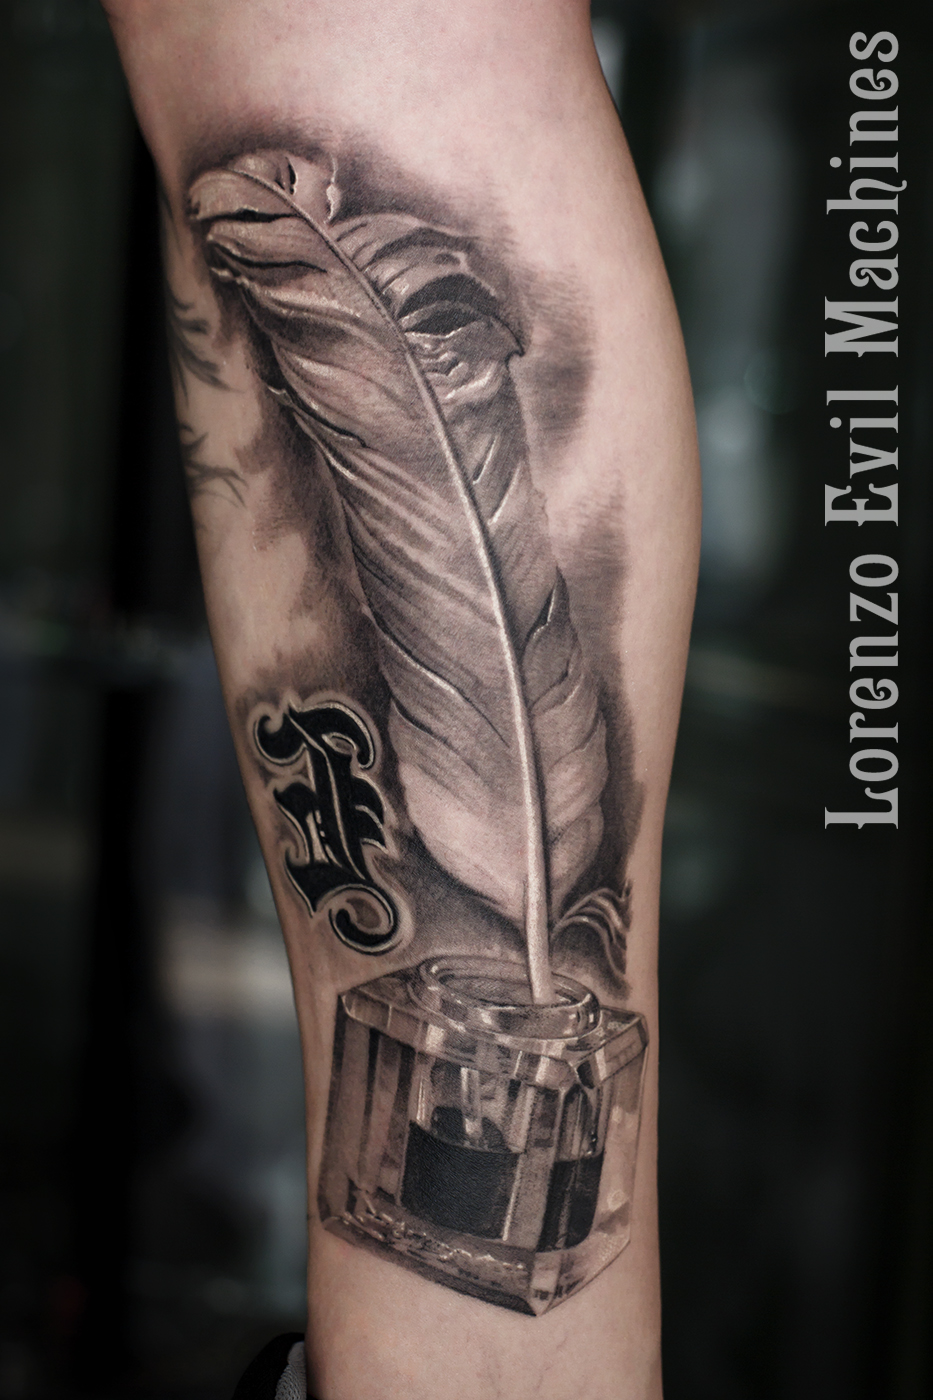 Piuma_Calamaio_feather_donna_black_gray_sfumato_3d_tatuatore_roma_Lorenzo_Evil_Machines_Tattoo_tatuaggi_realistici_sito_best_migliore